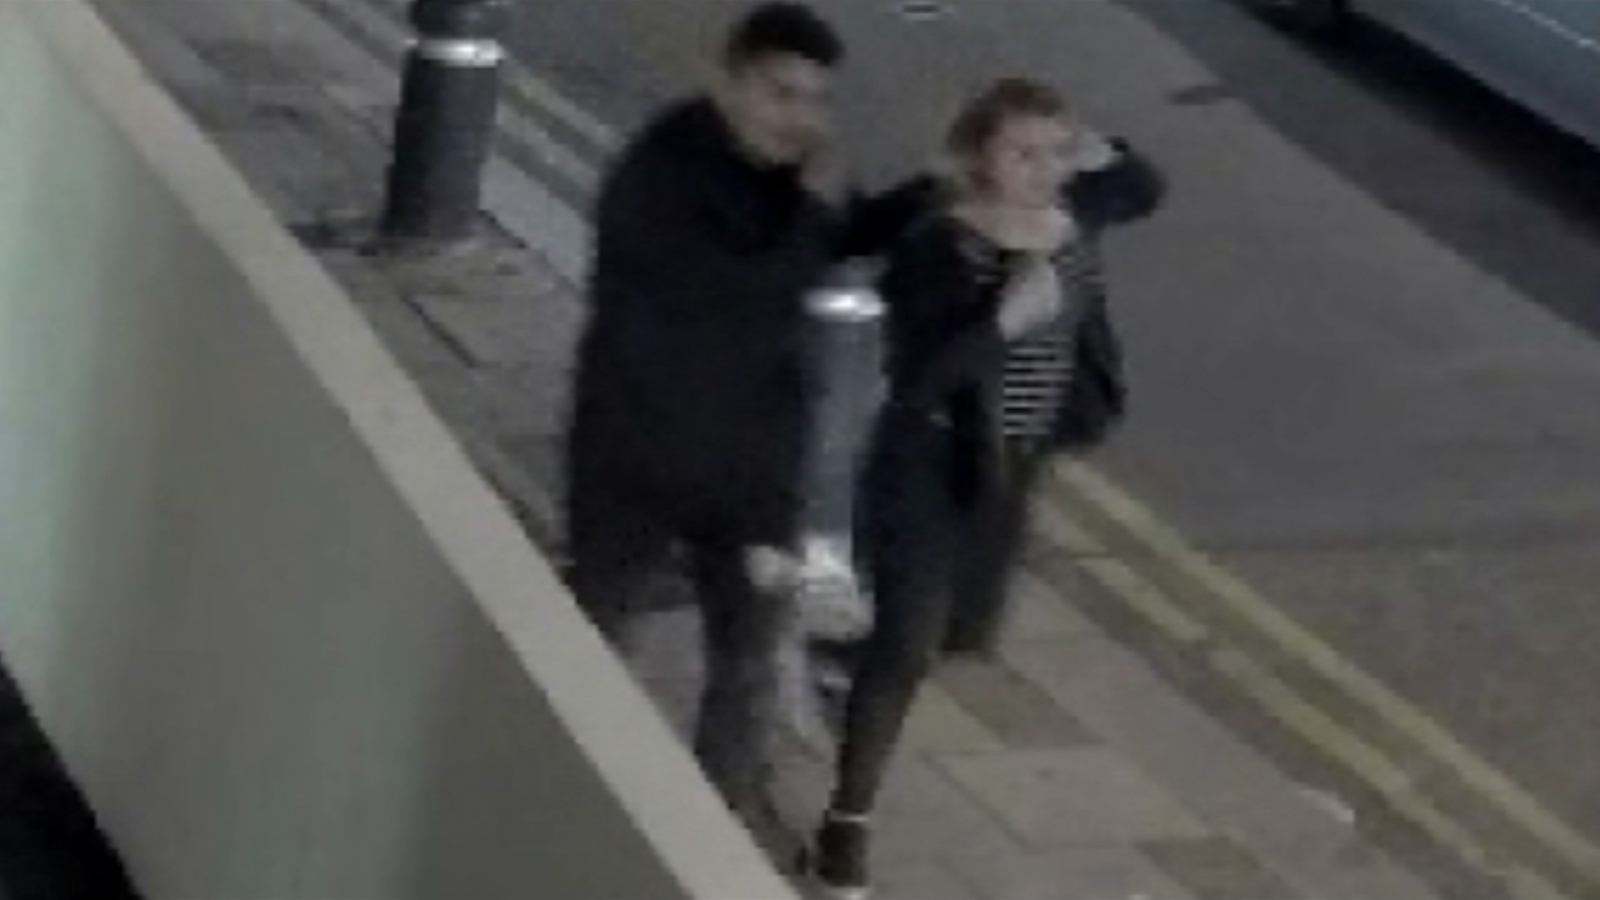 Police appeal after man seen manhandling